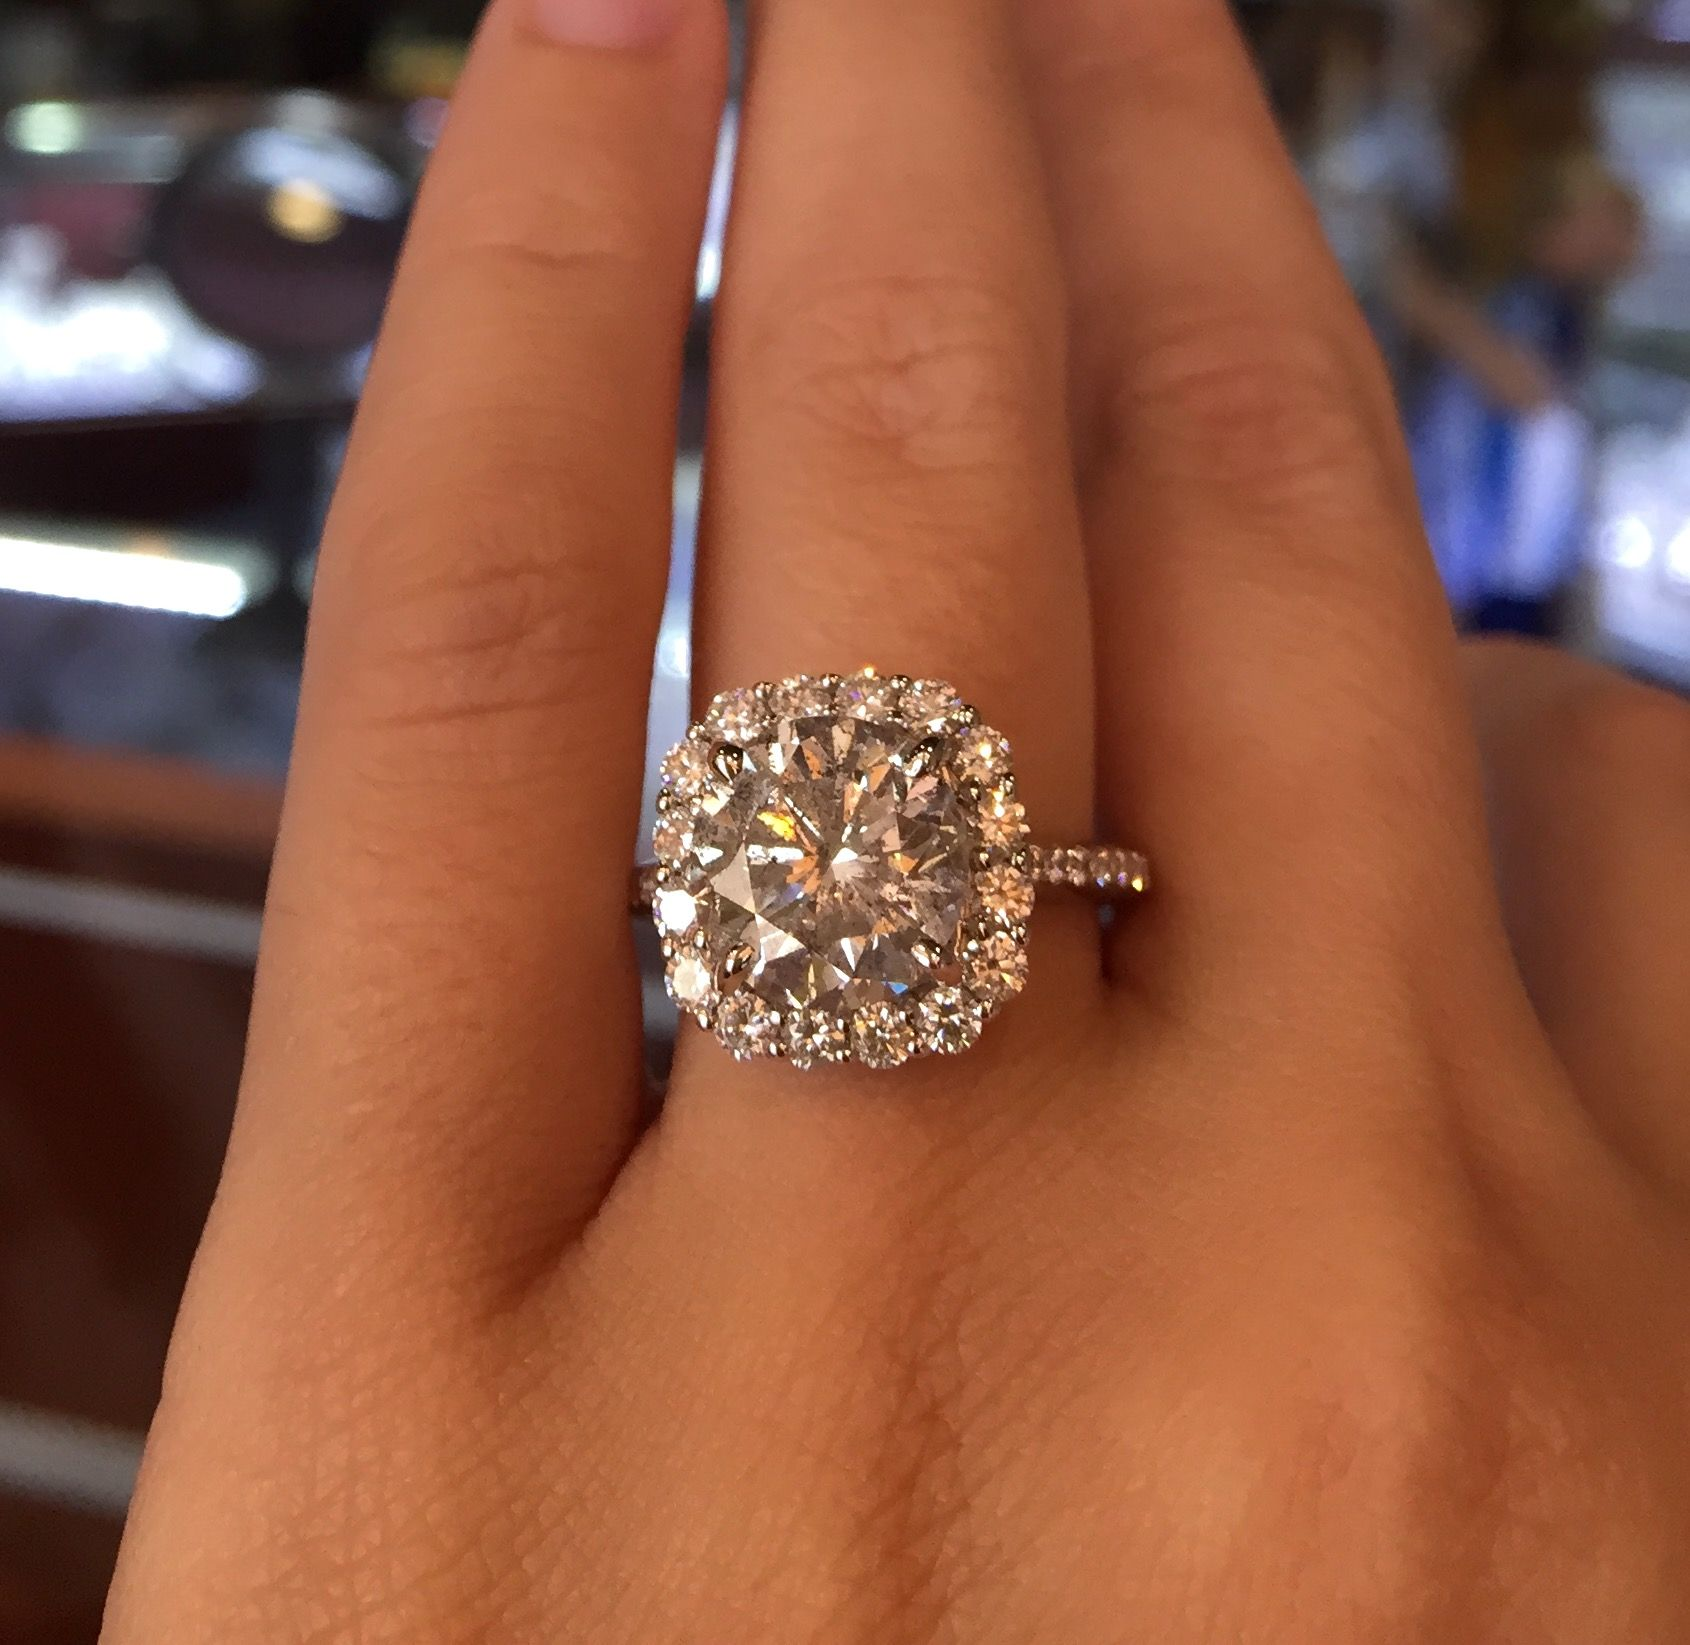 Top 10 Engagement Ring Designs Our Insta Fans Adore: 14k White Gold 3.84ct Diamond Halo Engagement Ring